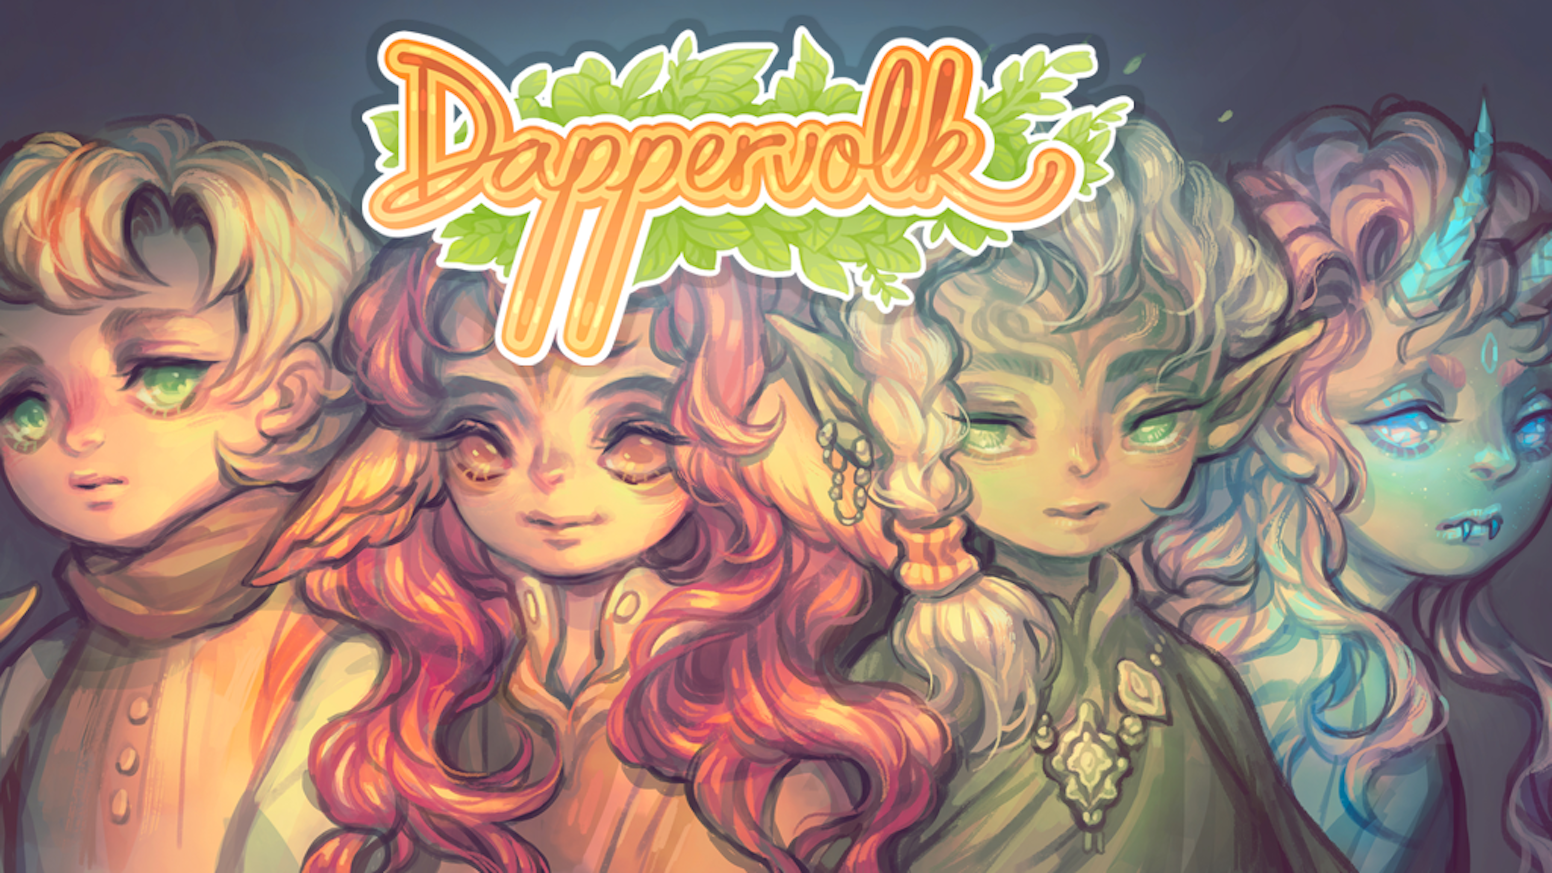 Dappervolk is a virtual pet and avatar site with cute painterly art, RPG elements, and an ever-expanding world of quests.